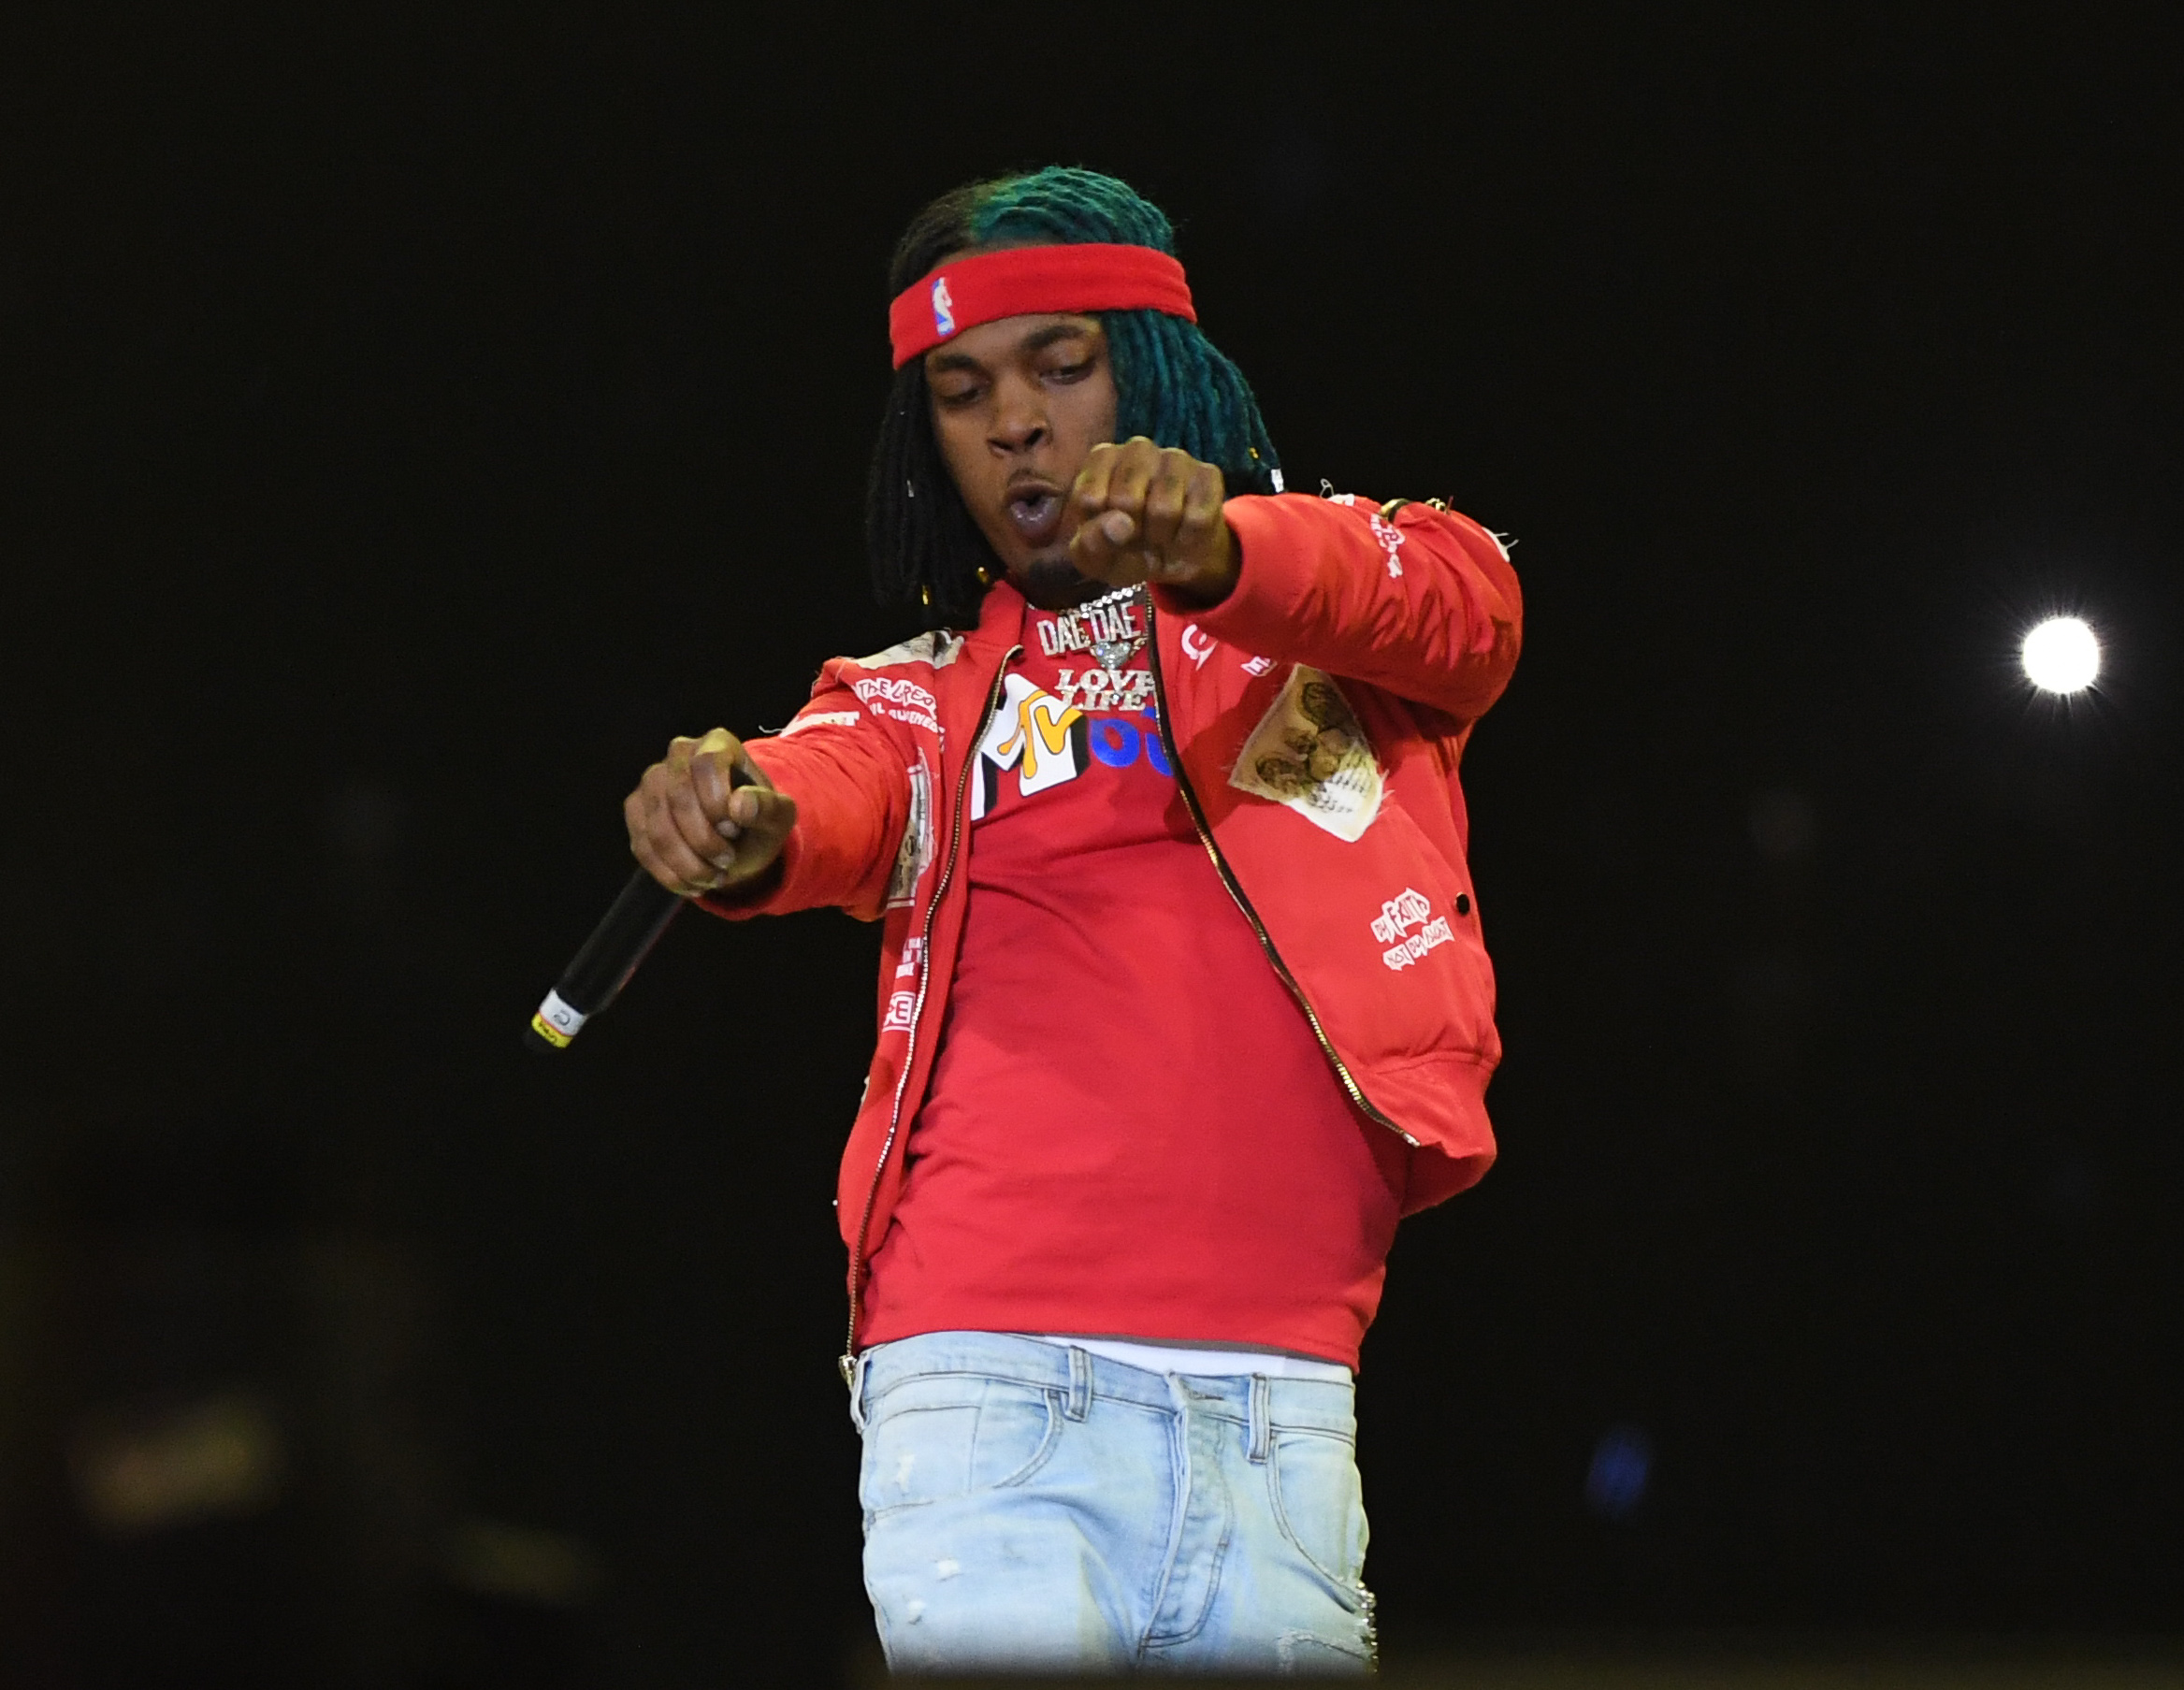 Chris Brown In Concert - Atlanta, Georgia